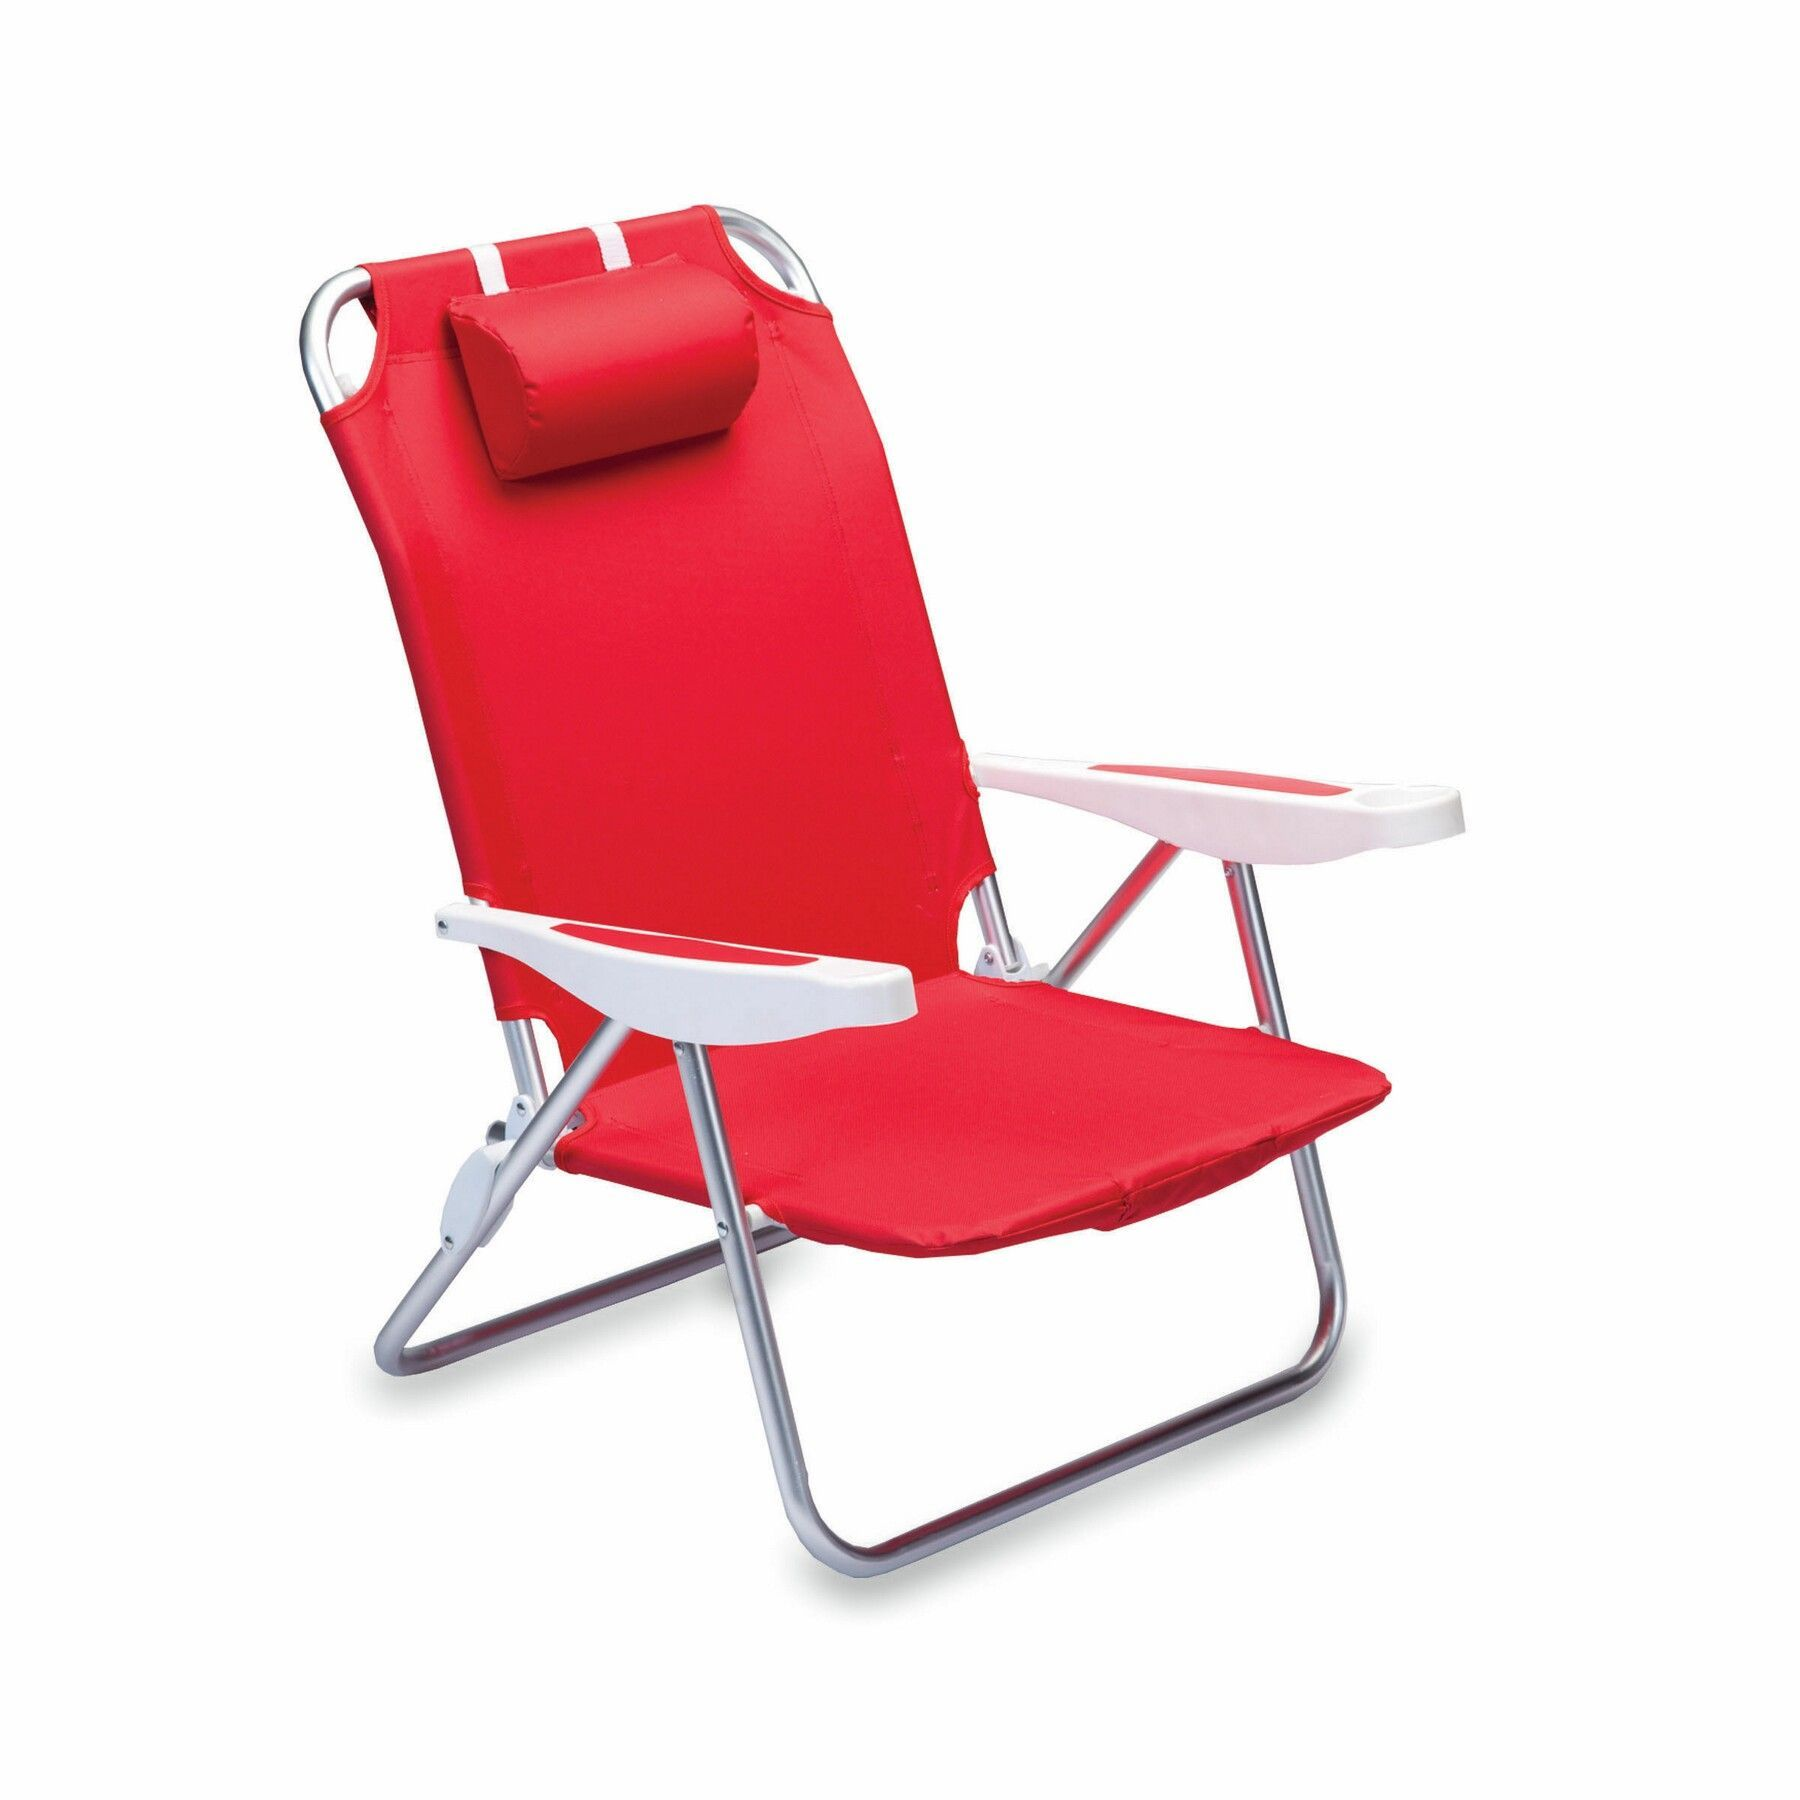 Lightweight and portable reclining beach chair with backpack